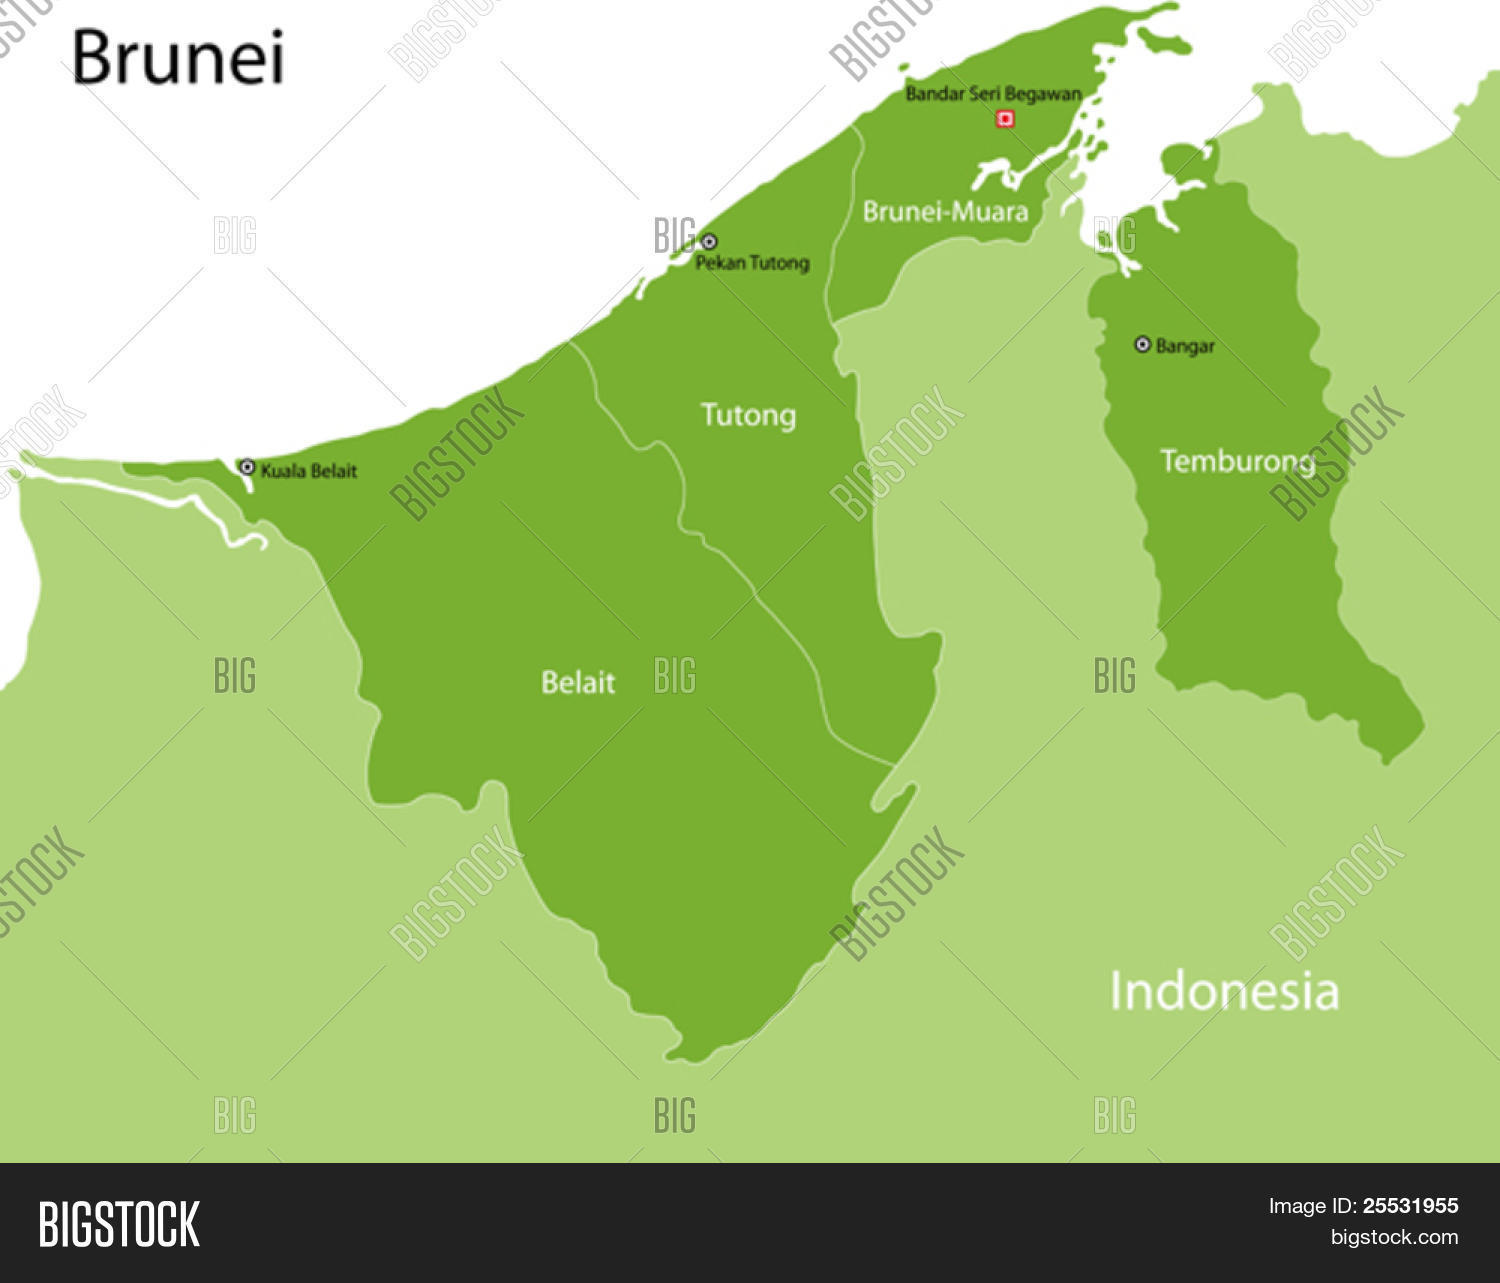 brunei map with provinces and capital cities